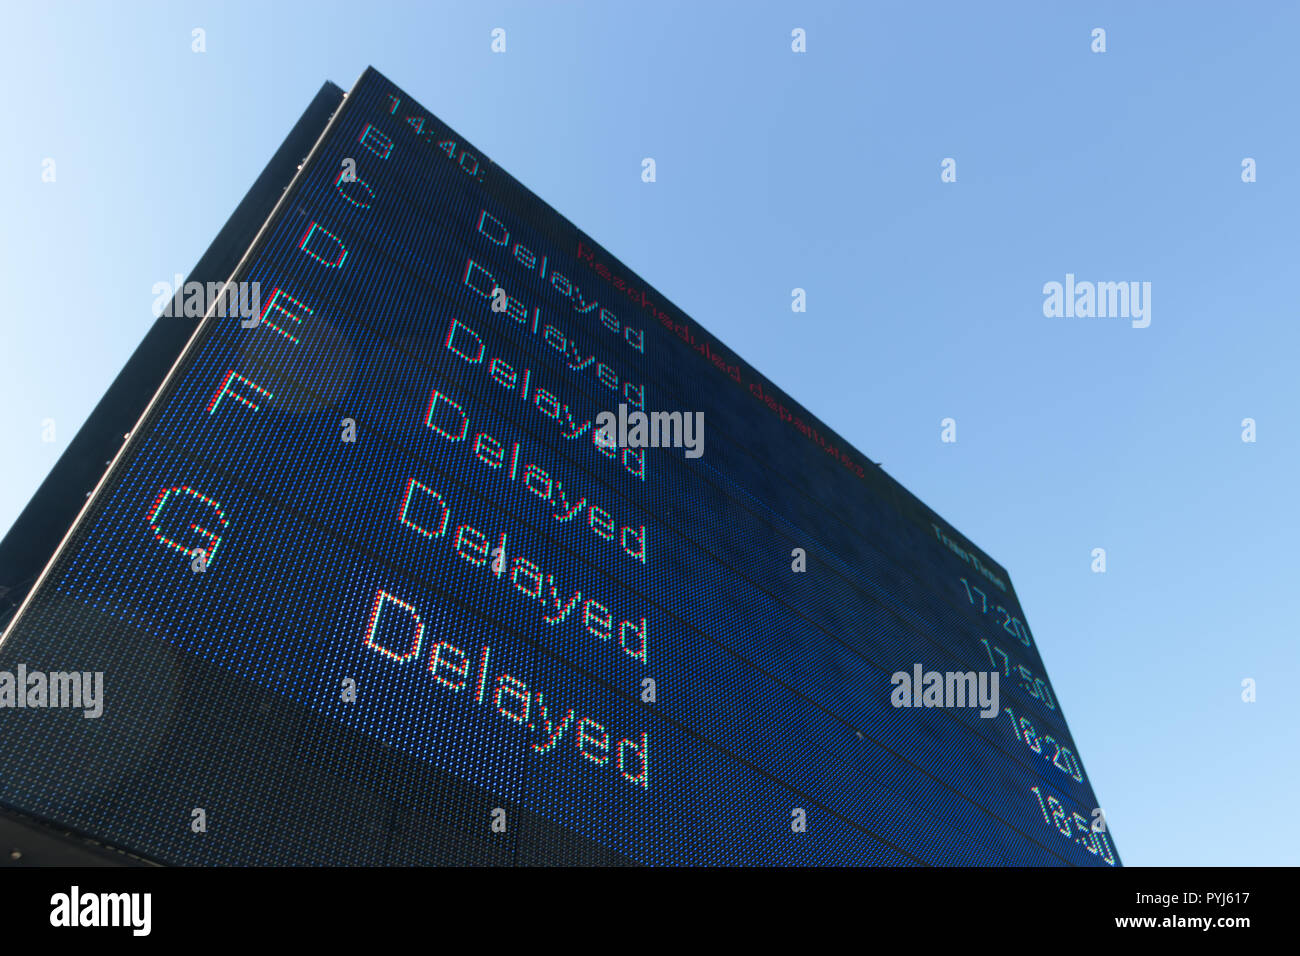 Display board showing extreme delays - Stock Image